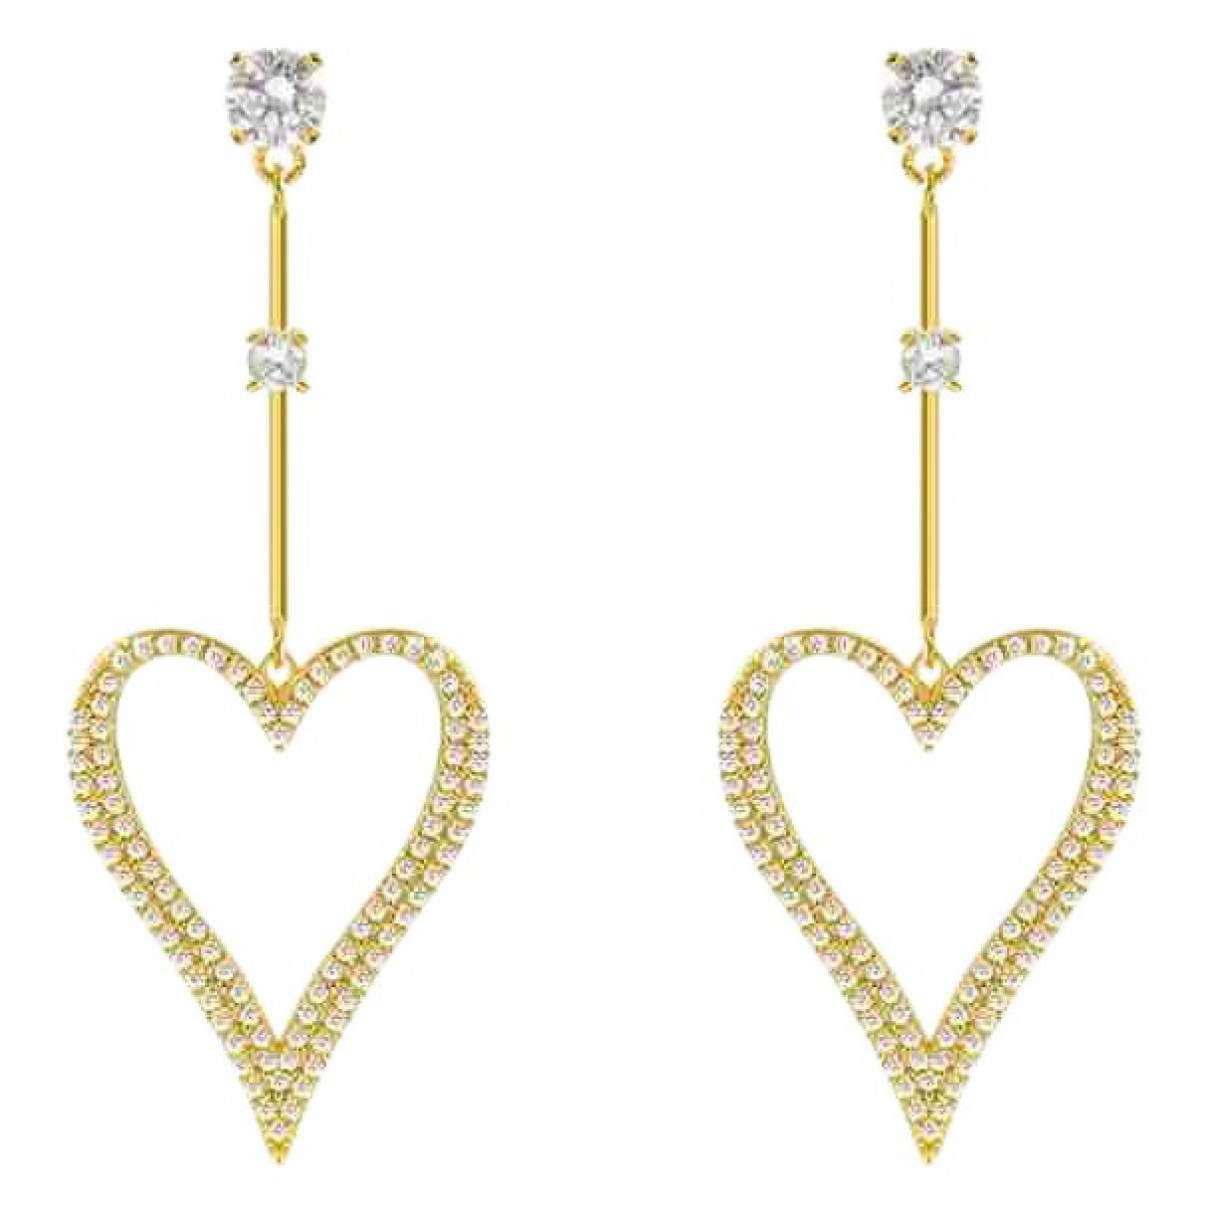 Non Signé / Unsigned Motifs Coeurs Gold Metal Earrings for Women N